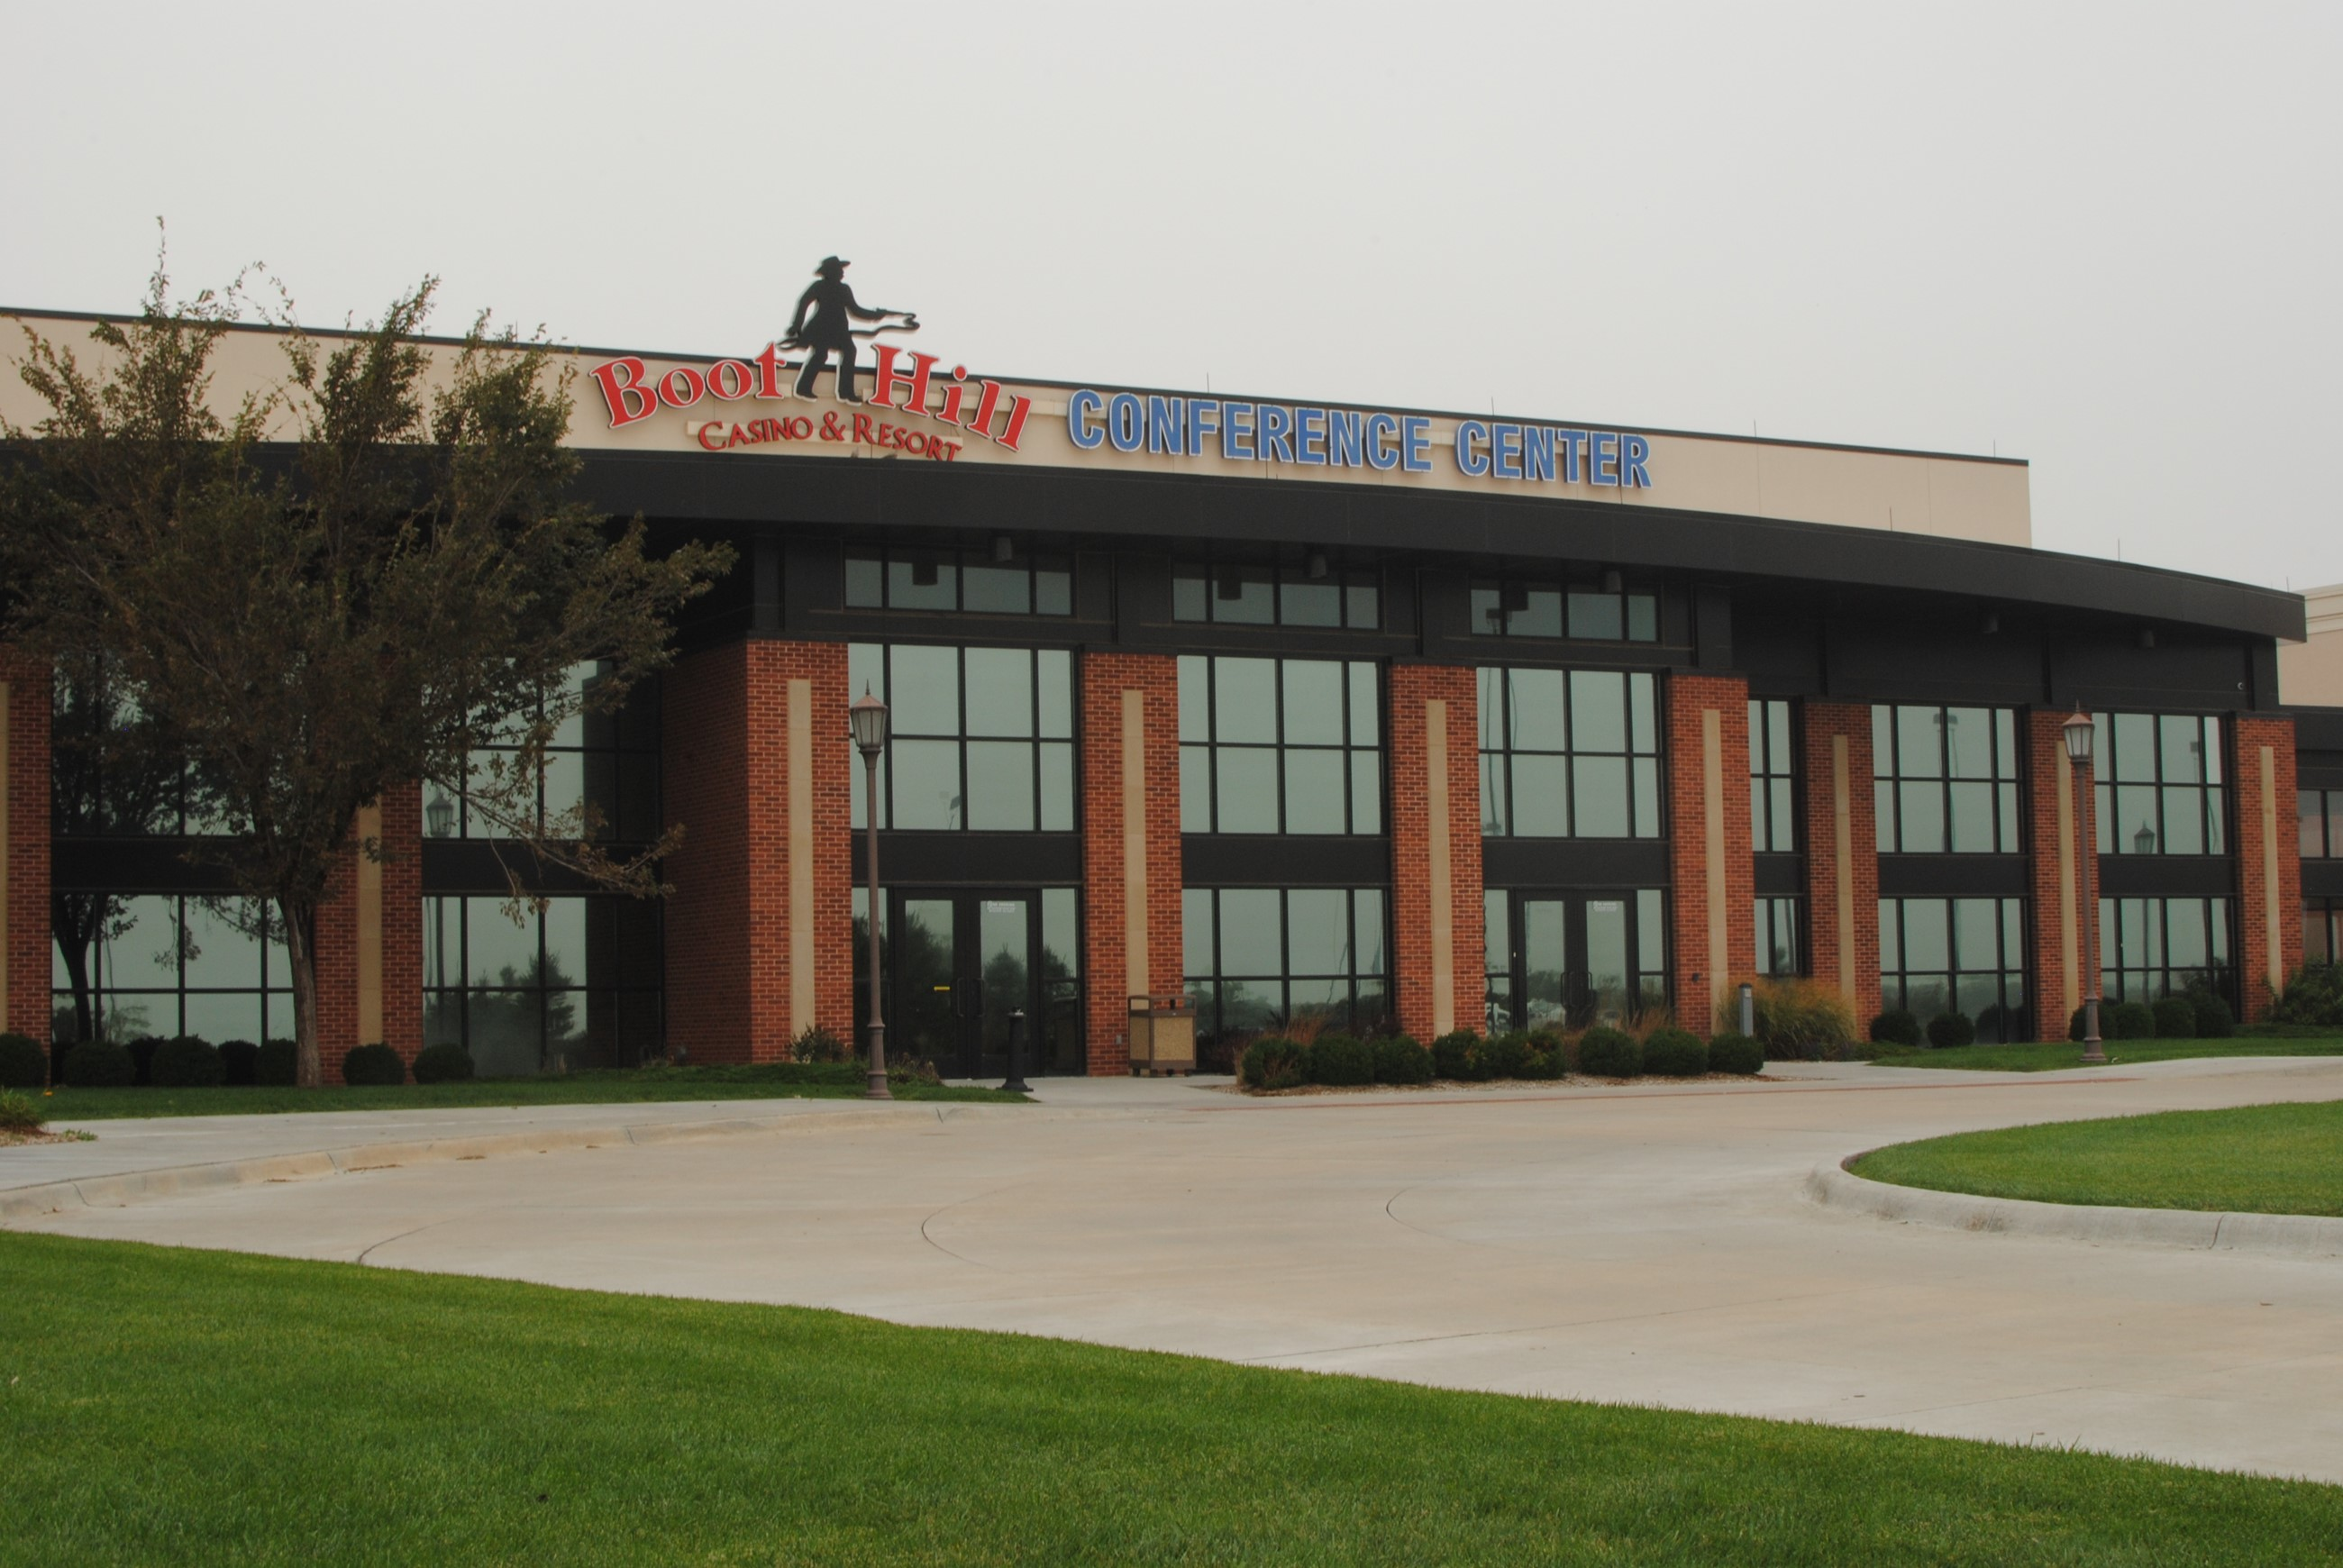 Boot Hill Casino and Resort Conference Center Exterior